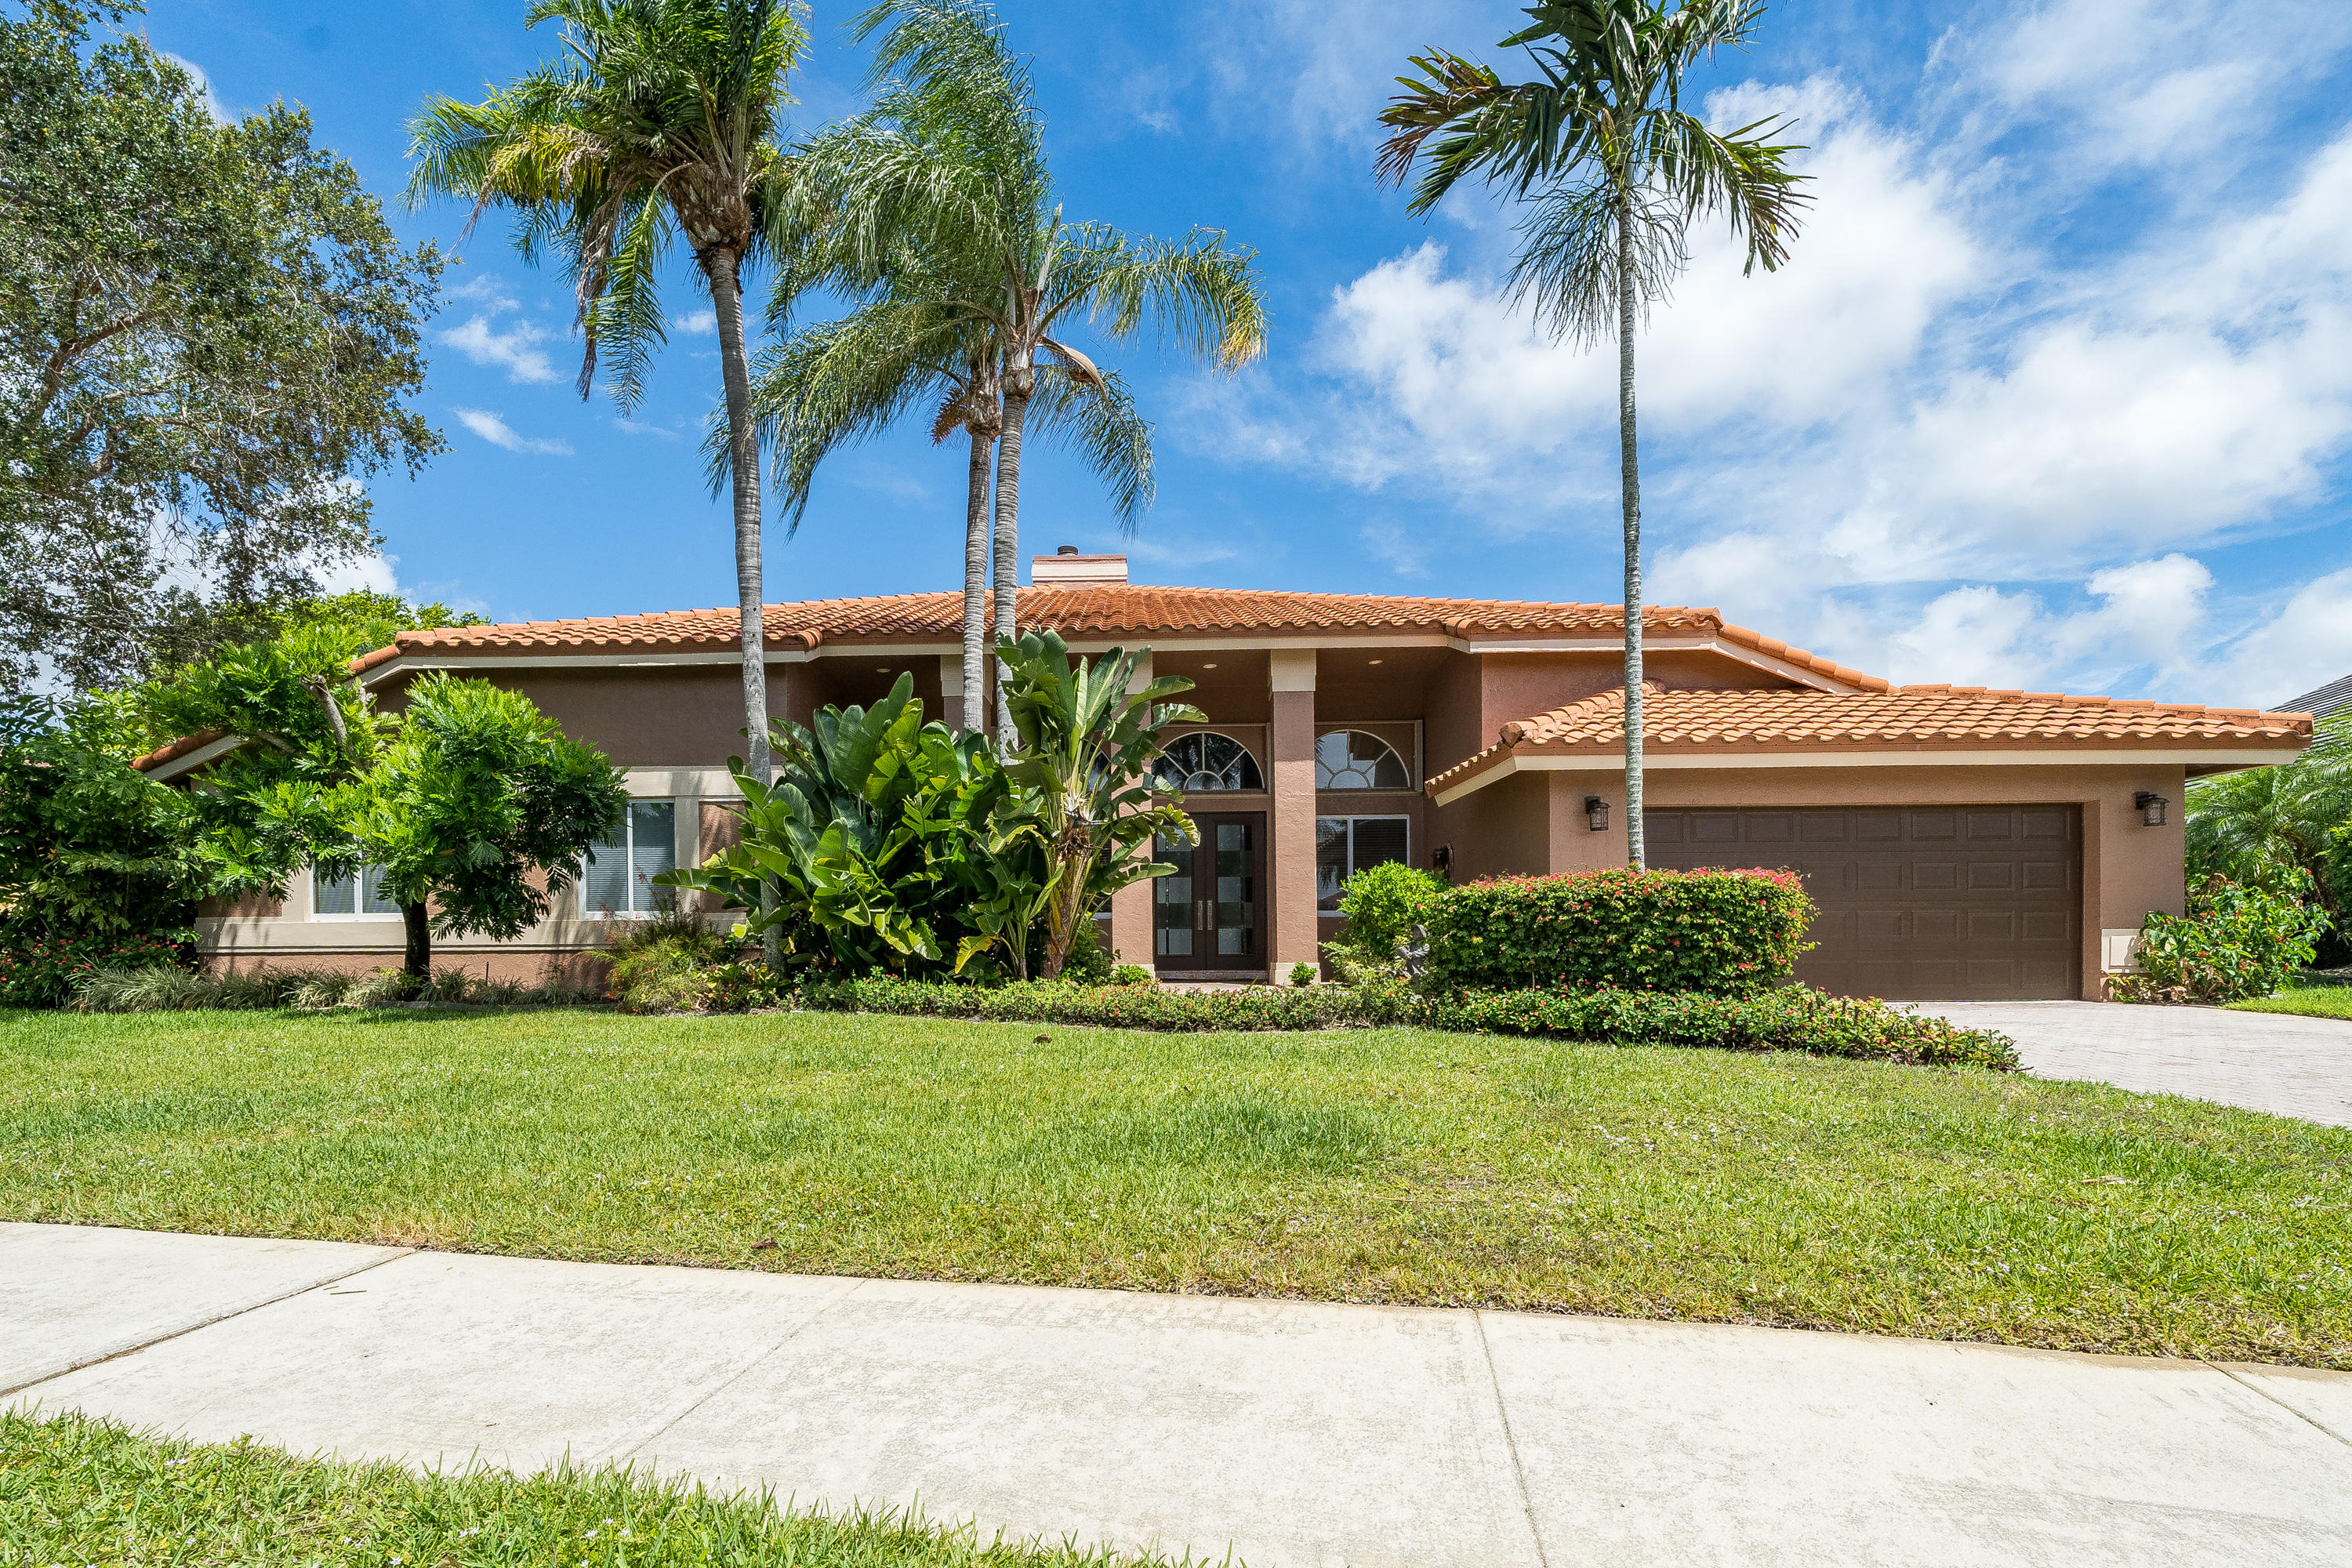 6774 Newport Lake Circle Boca Raton, FL 33496